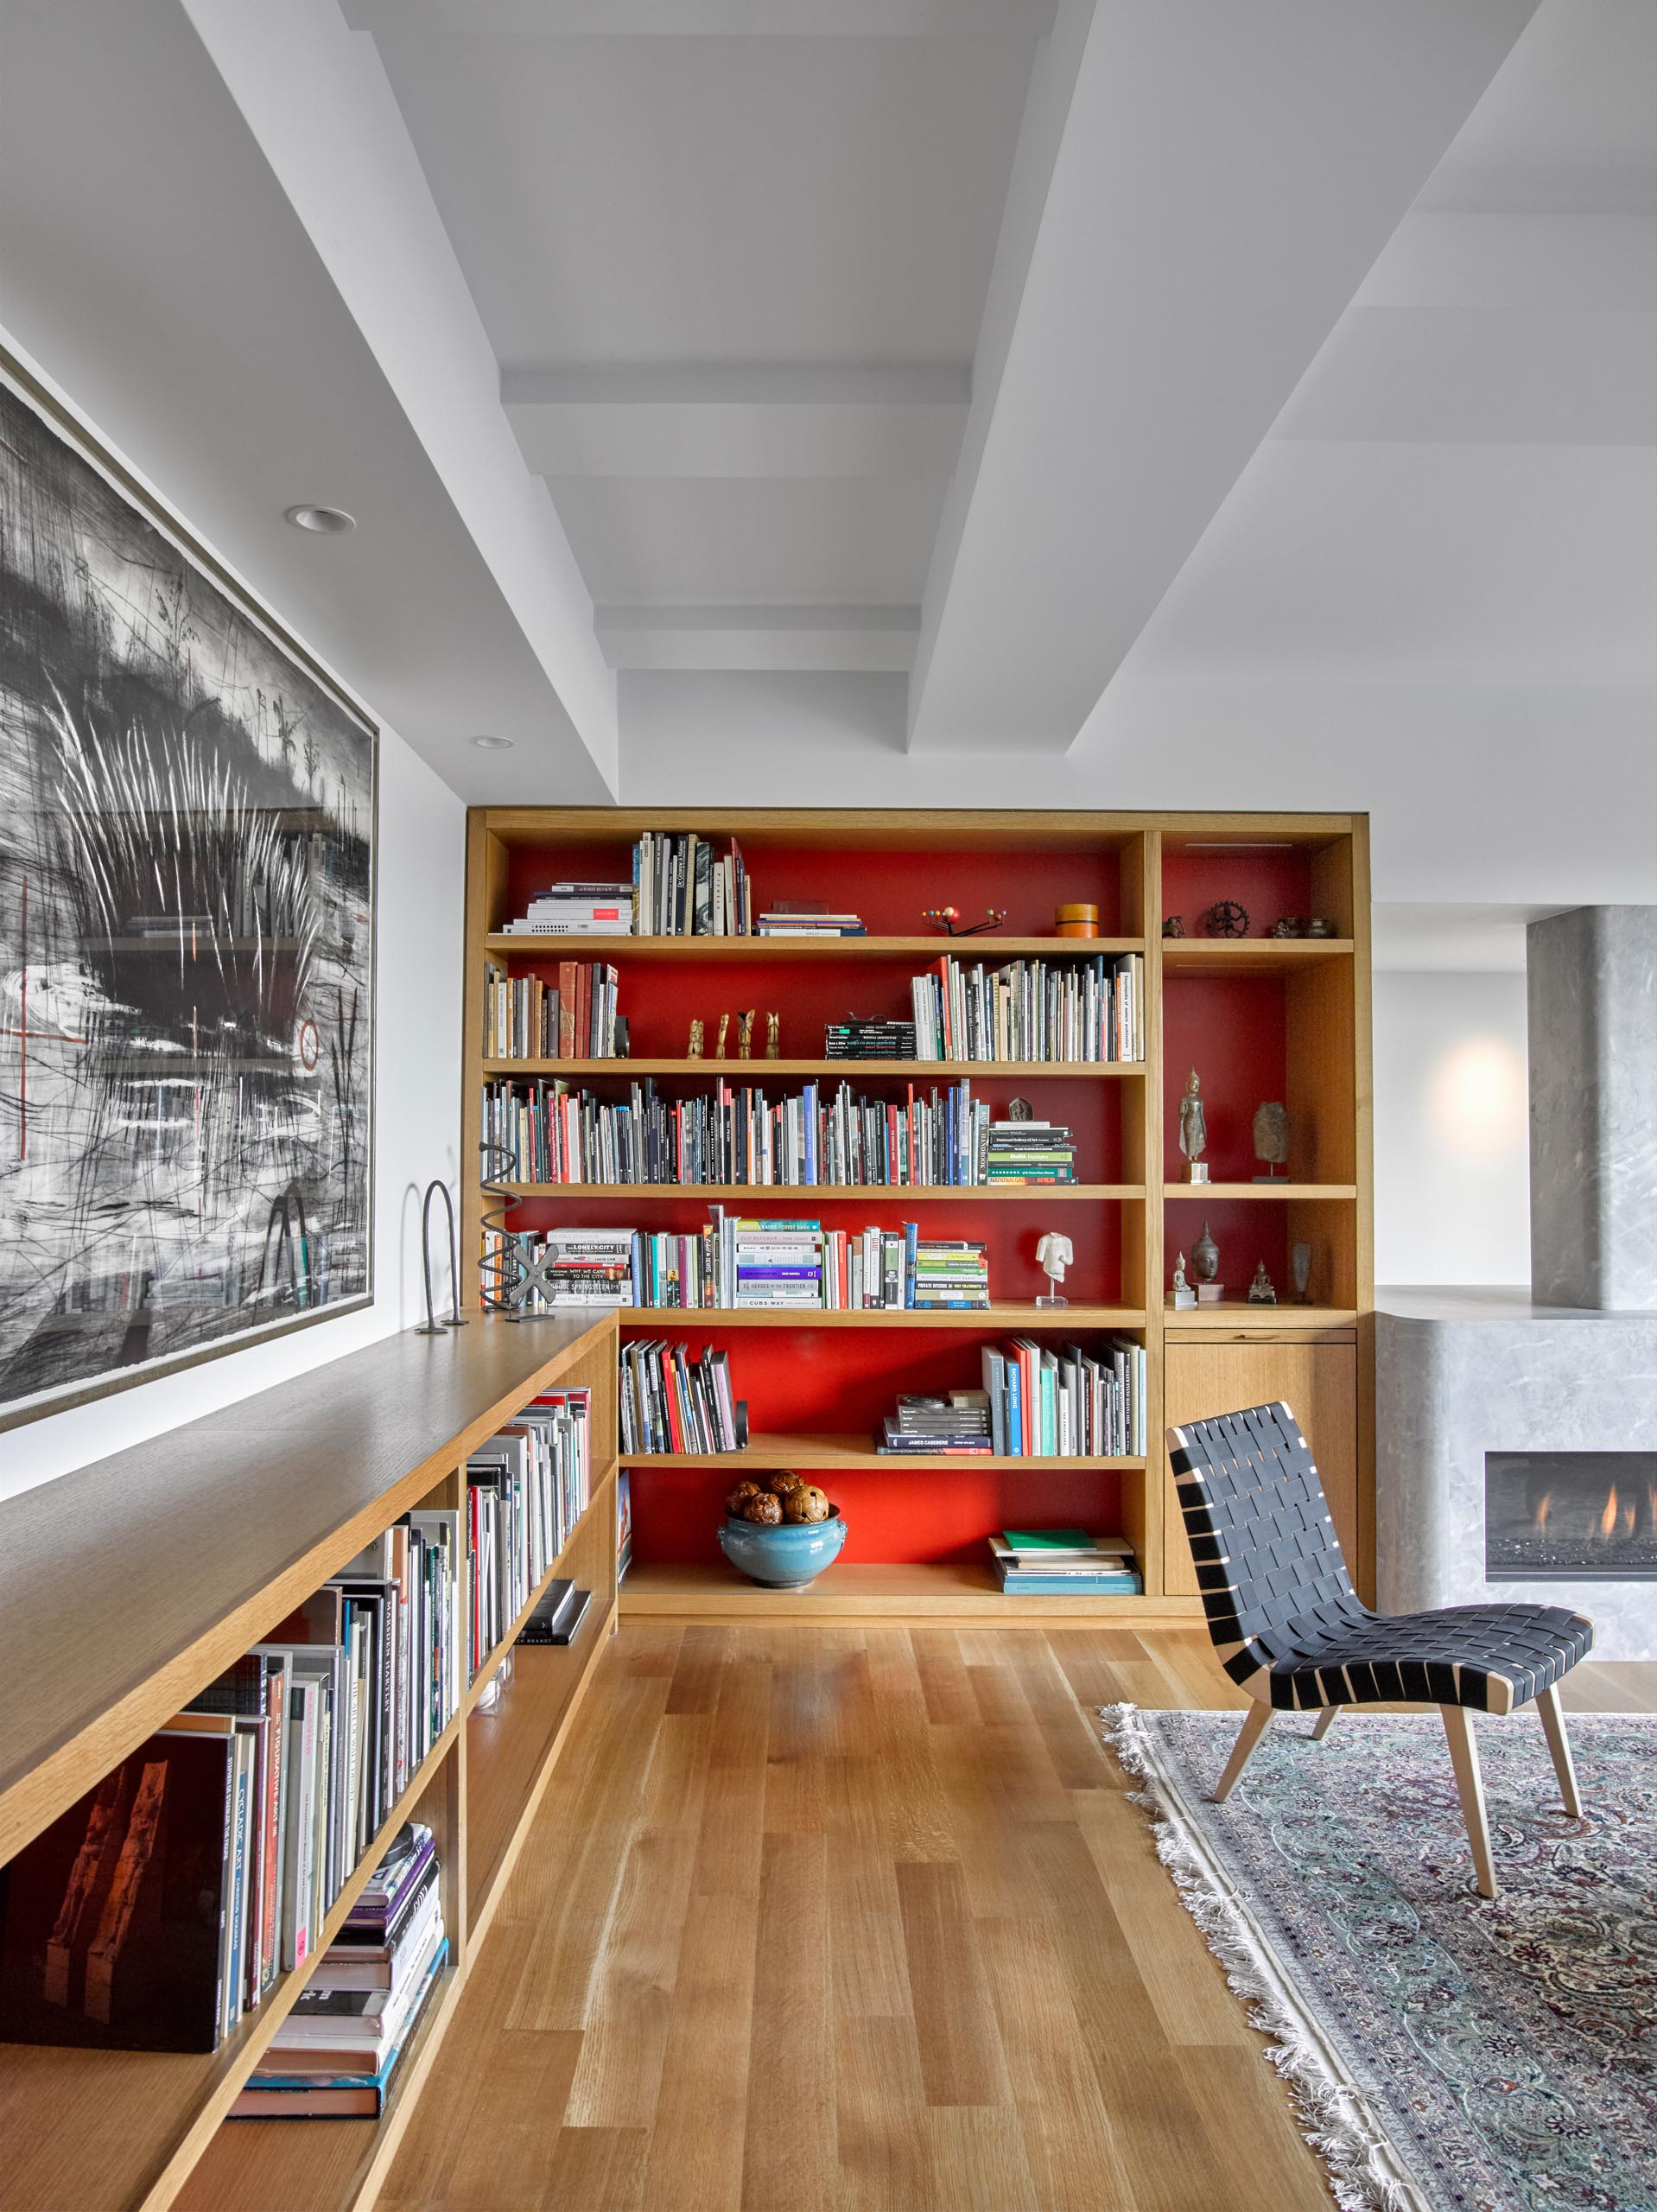 A custom wood shelving unit runs along the wall and transitions into a bookshelf with LED lighting.